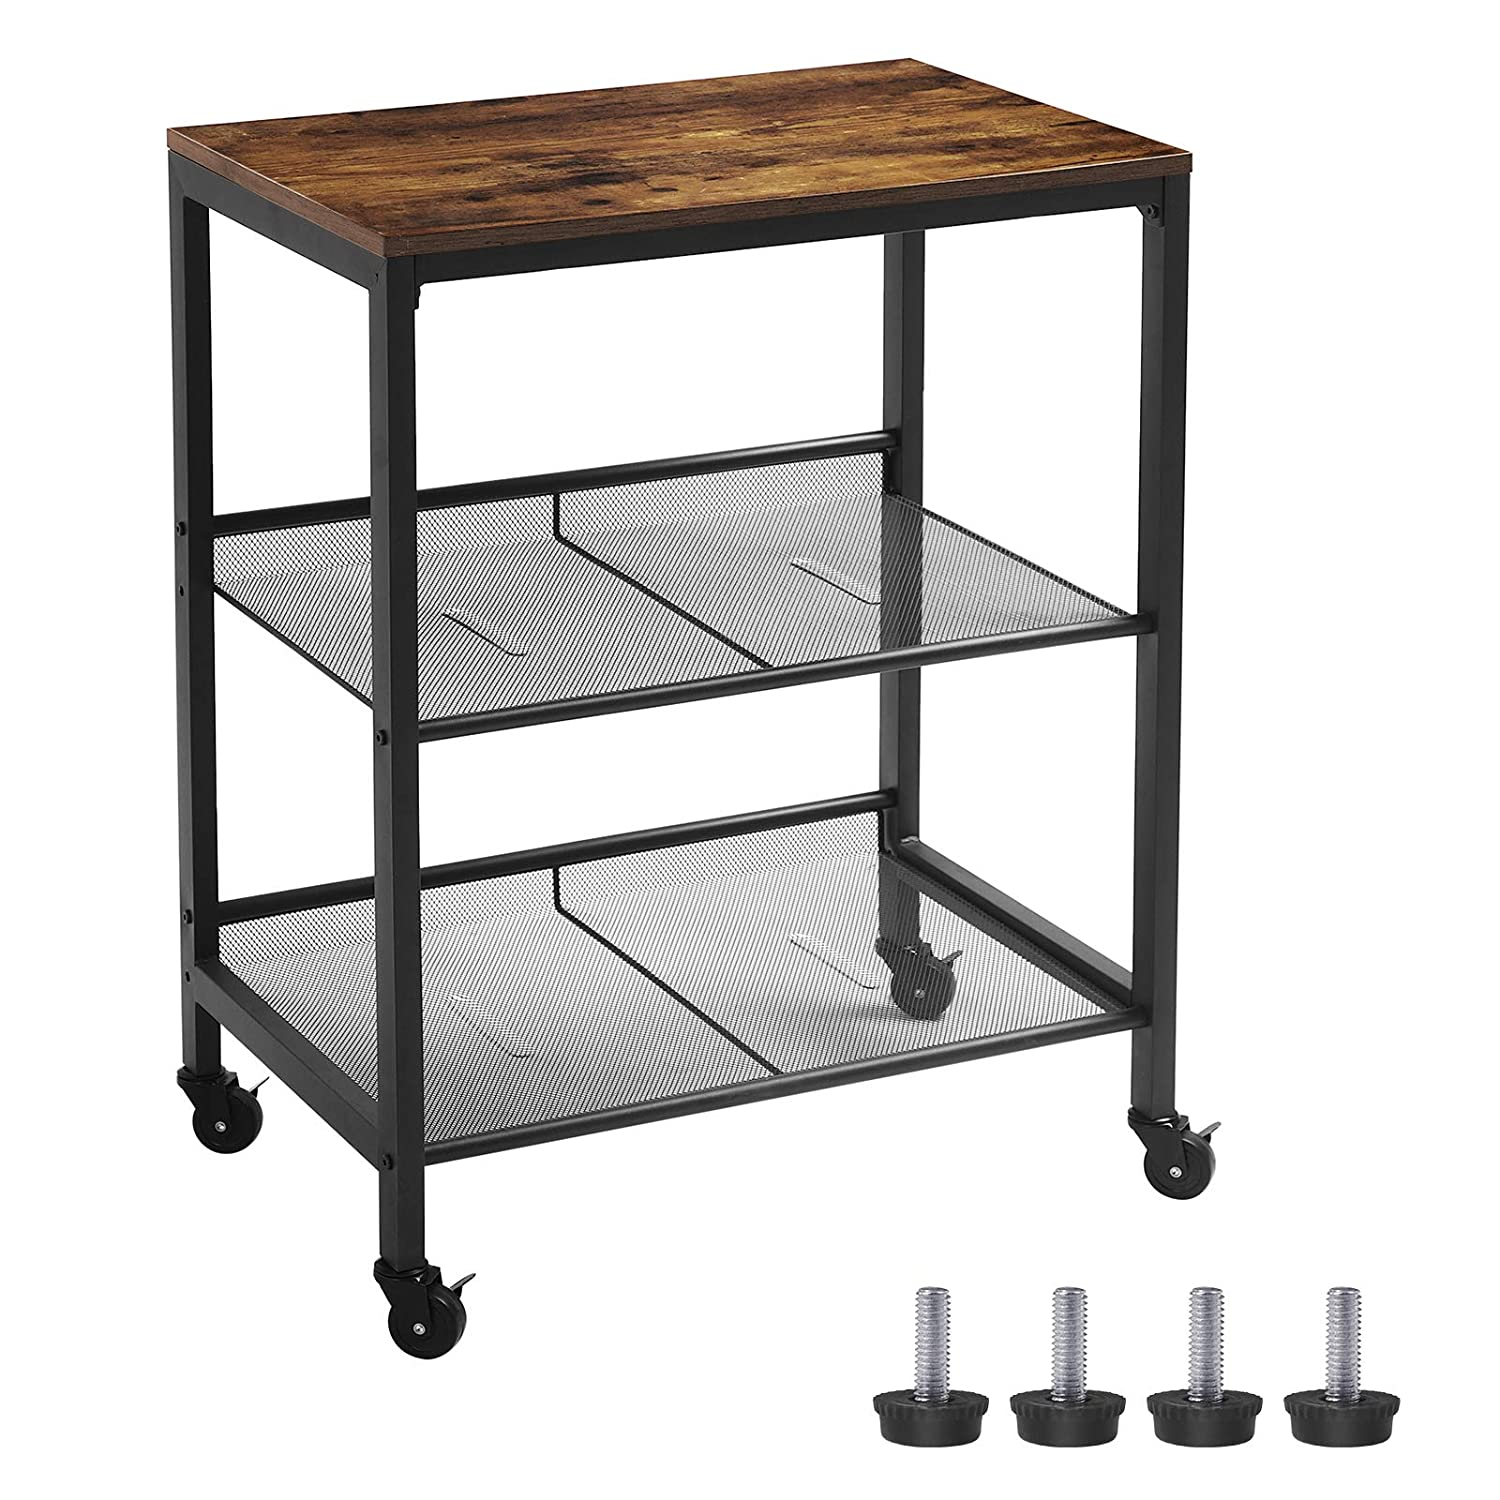 HOOBRO Serving Cart, 3-Tier Kitchen Utility Cart on Wheels, Storage Shelves with Adjustable Feet, Industrial Design, for Kitchen and Living Room, Bedroom, Entryway, Easy Assembly, Rustic Brown